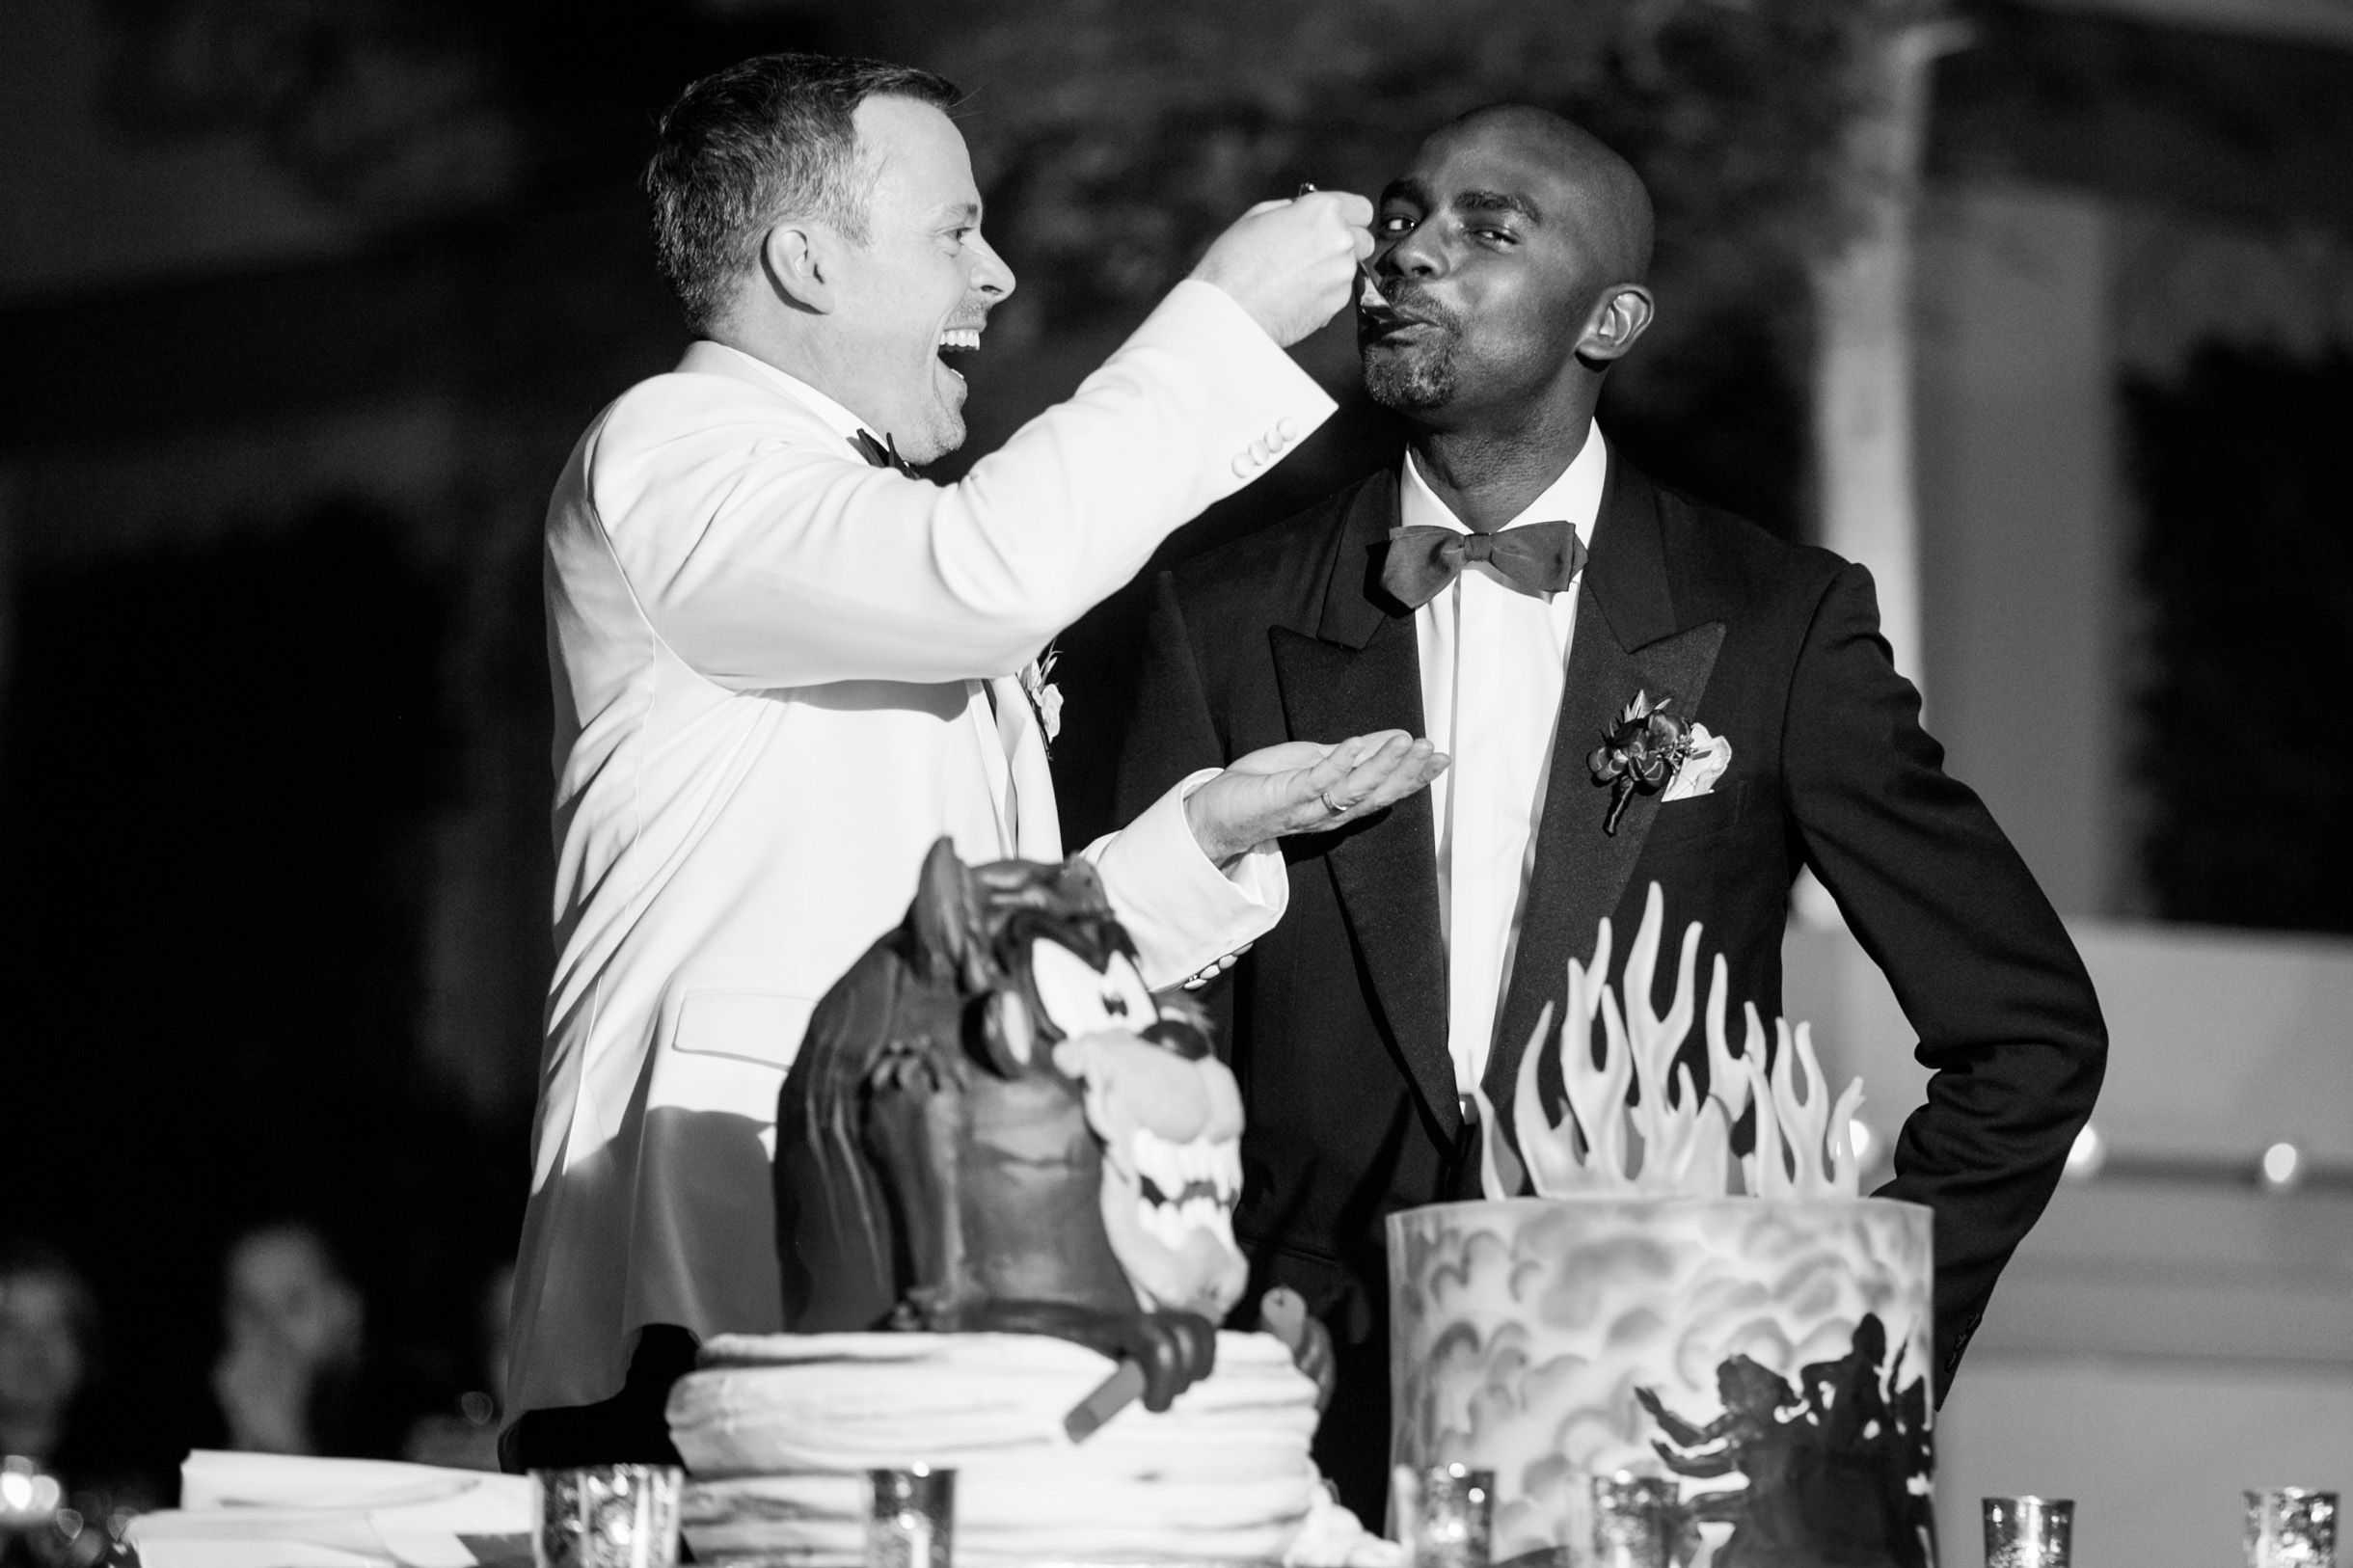 Two same sex grooms feeding each other wedding cake